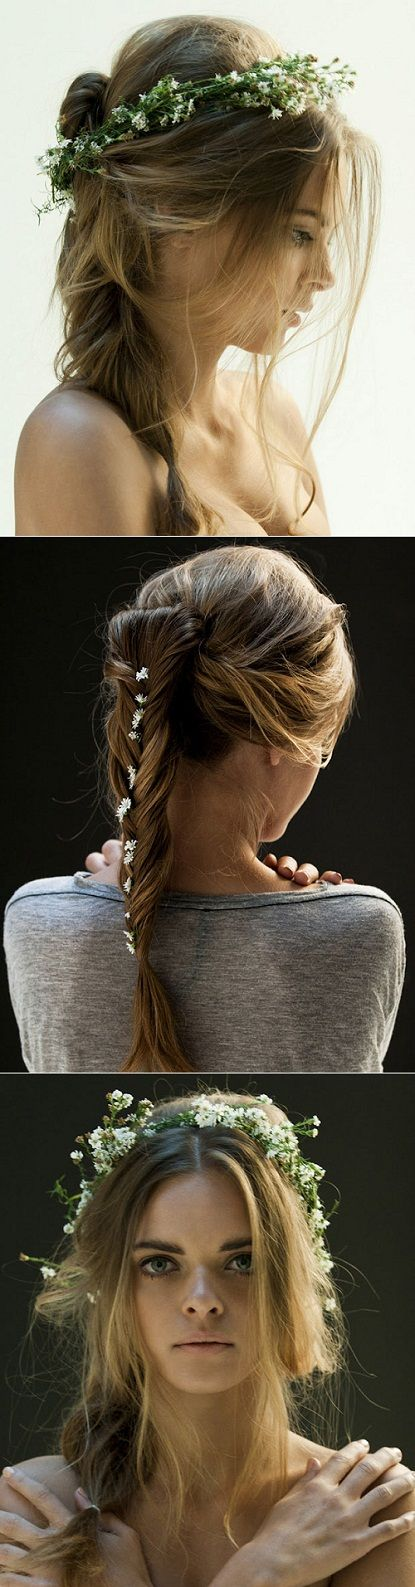 flowers in hair: Hair Ideas, Summer Hair, Long Hair, Fishtail Braids, Hair Style, Wedding Hairstyles, Ponies Tail, Braids Hair, Little Flowers